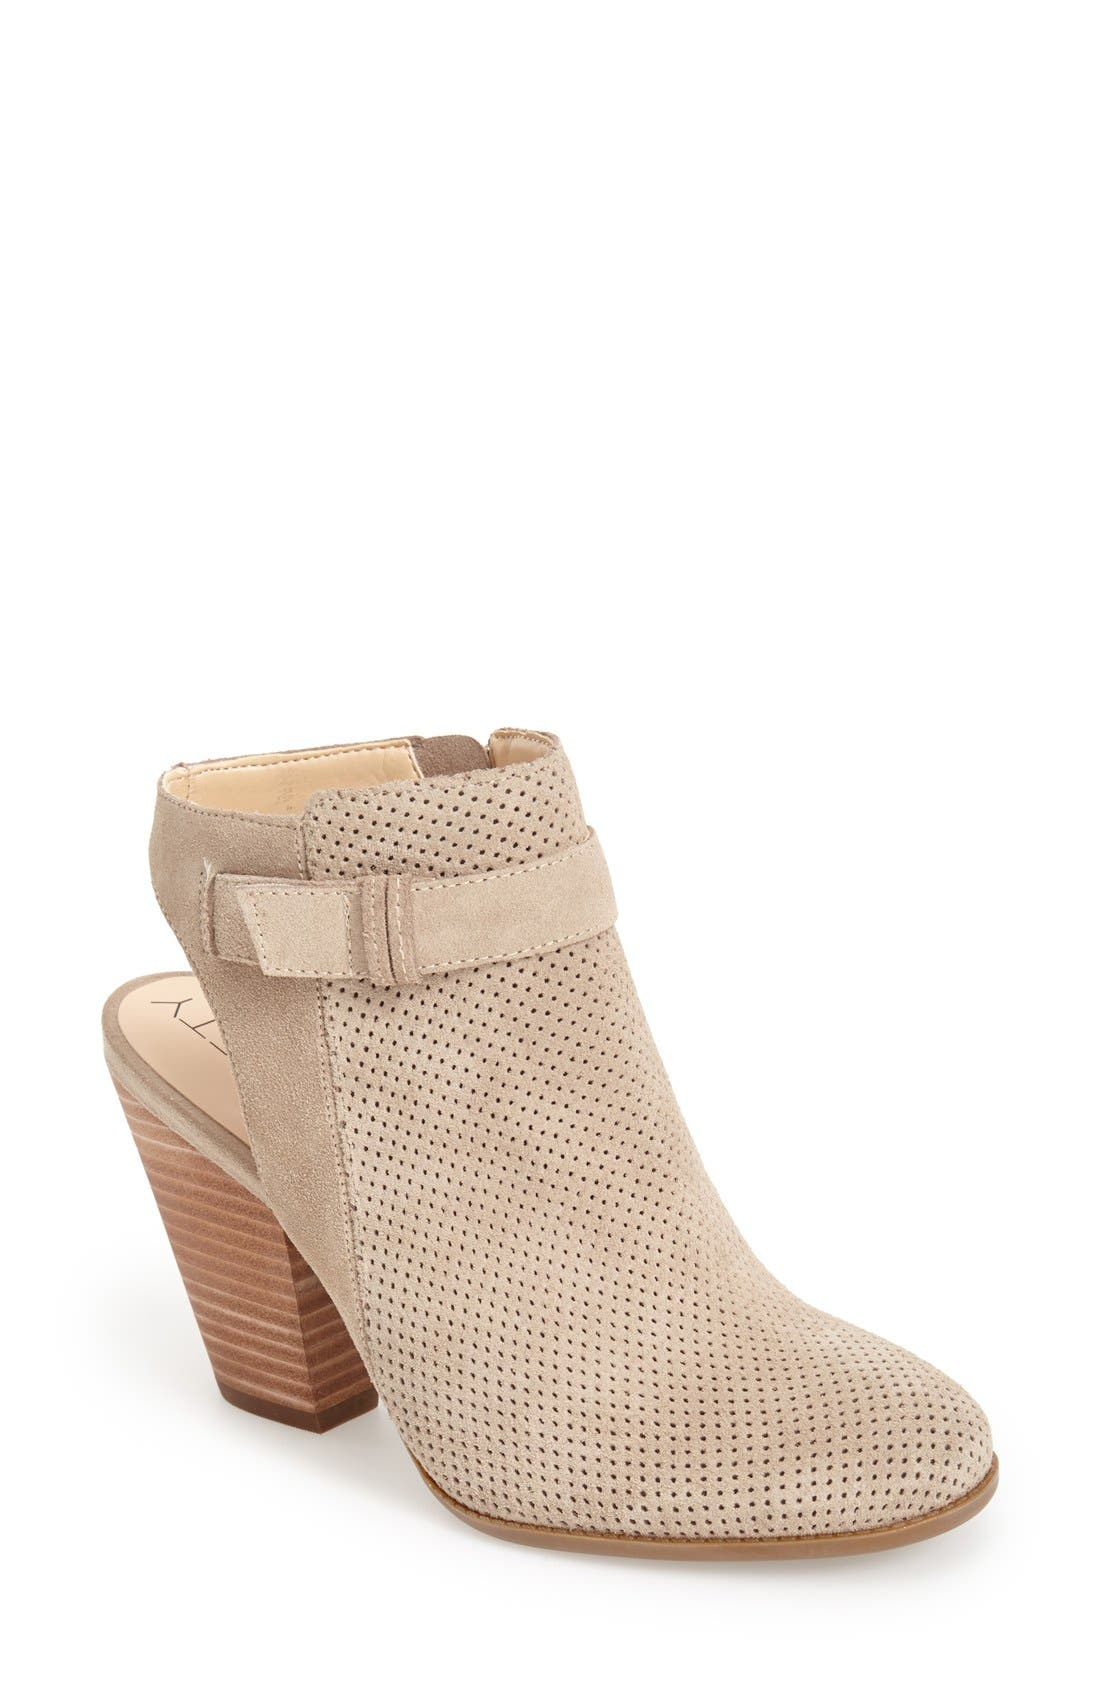 Main Image - Sole Society 'Perin' Perforated Suede Bootie (Women)